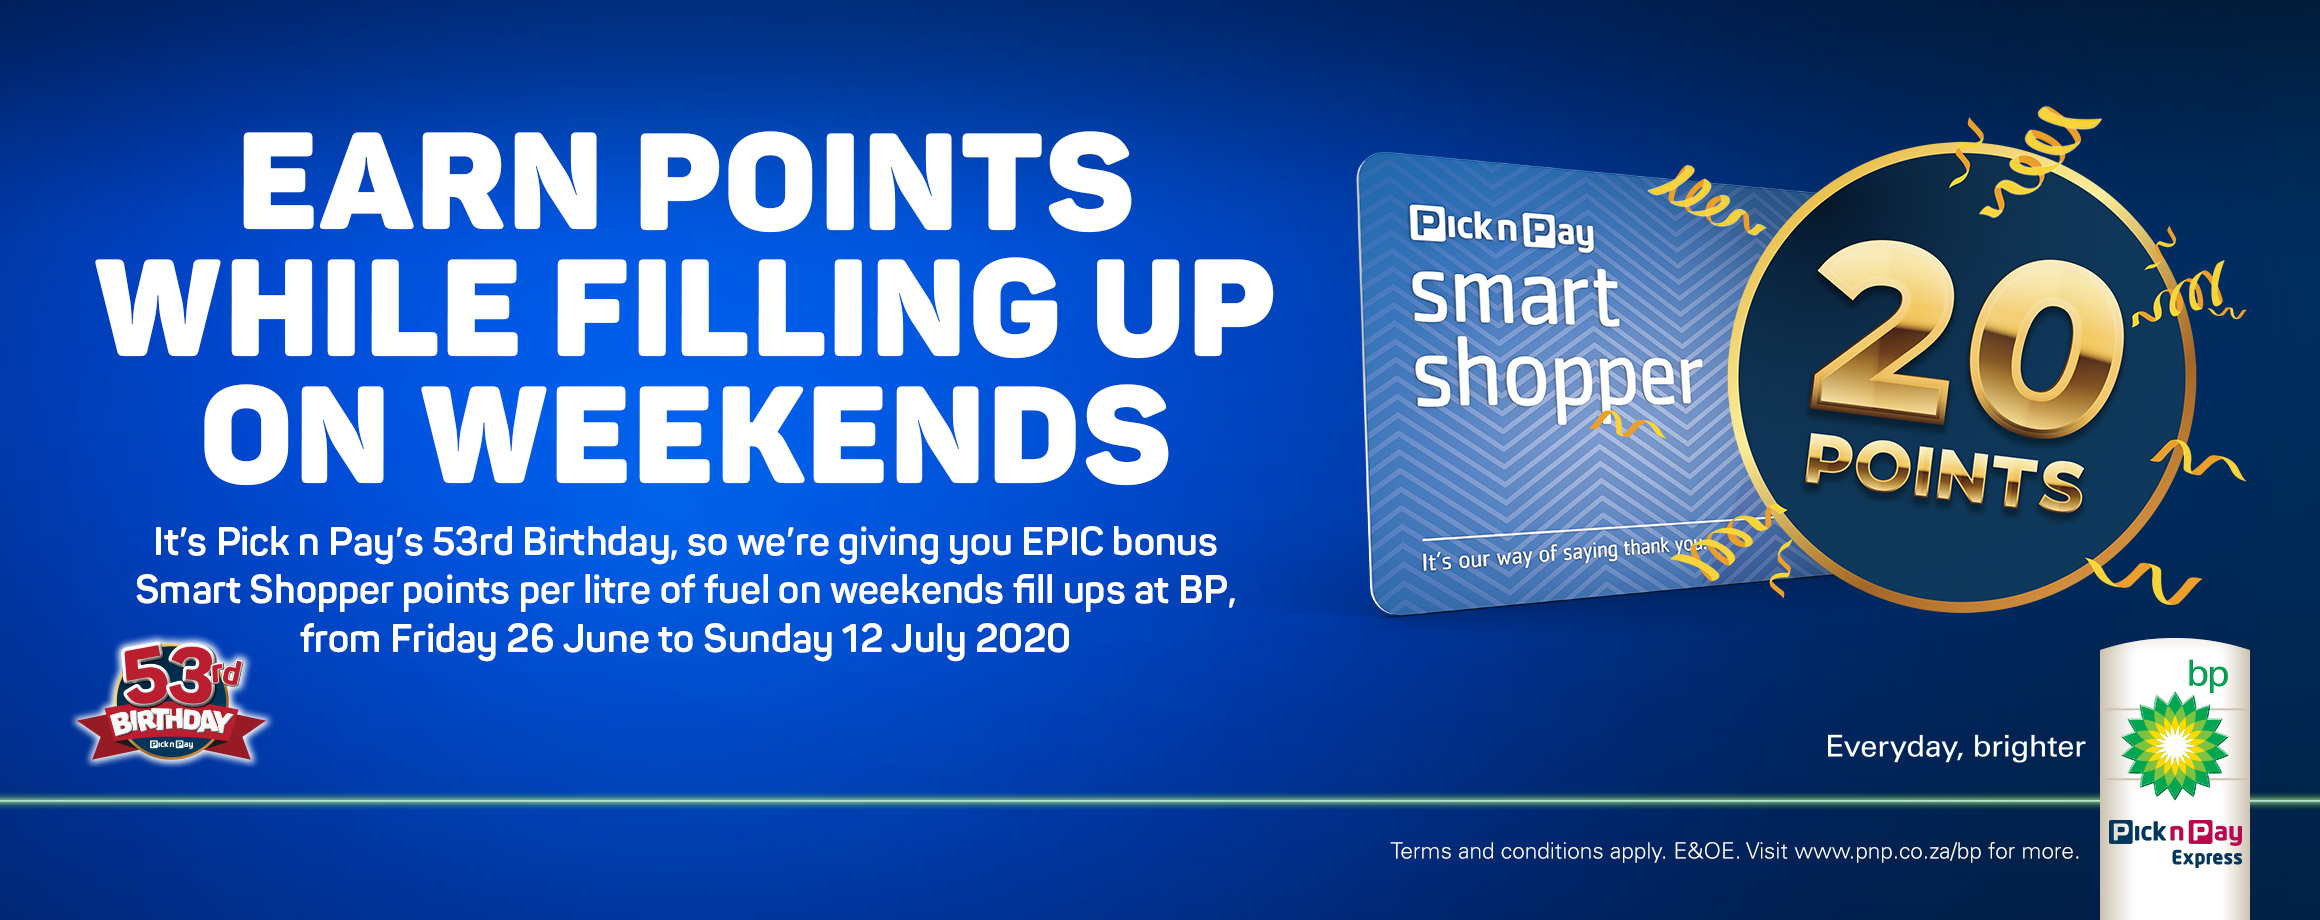 Earn points while filling up on weekends